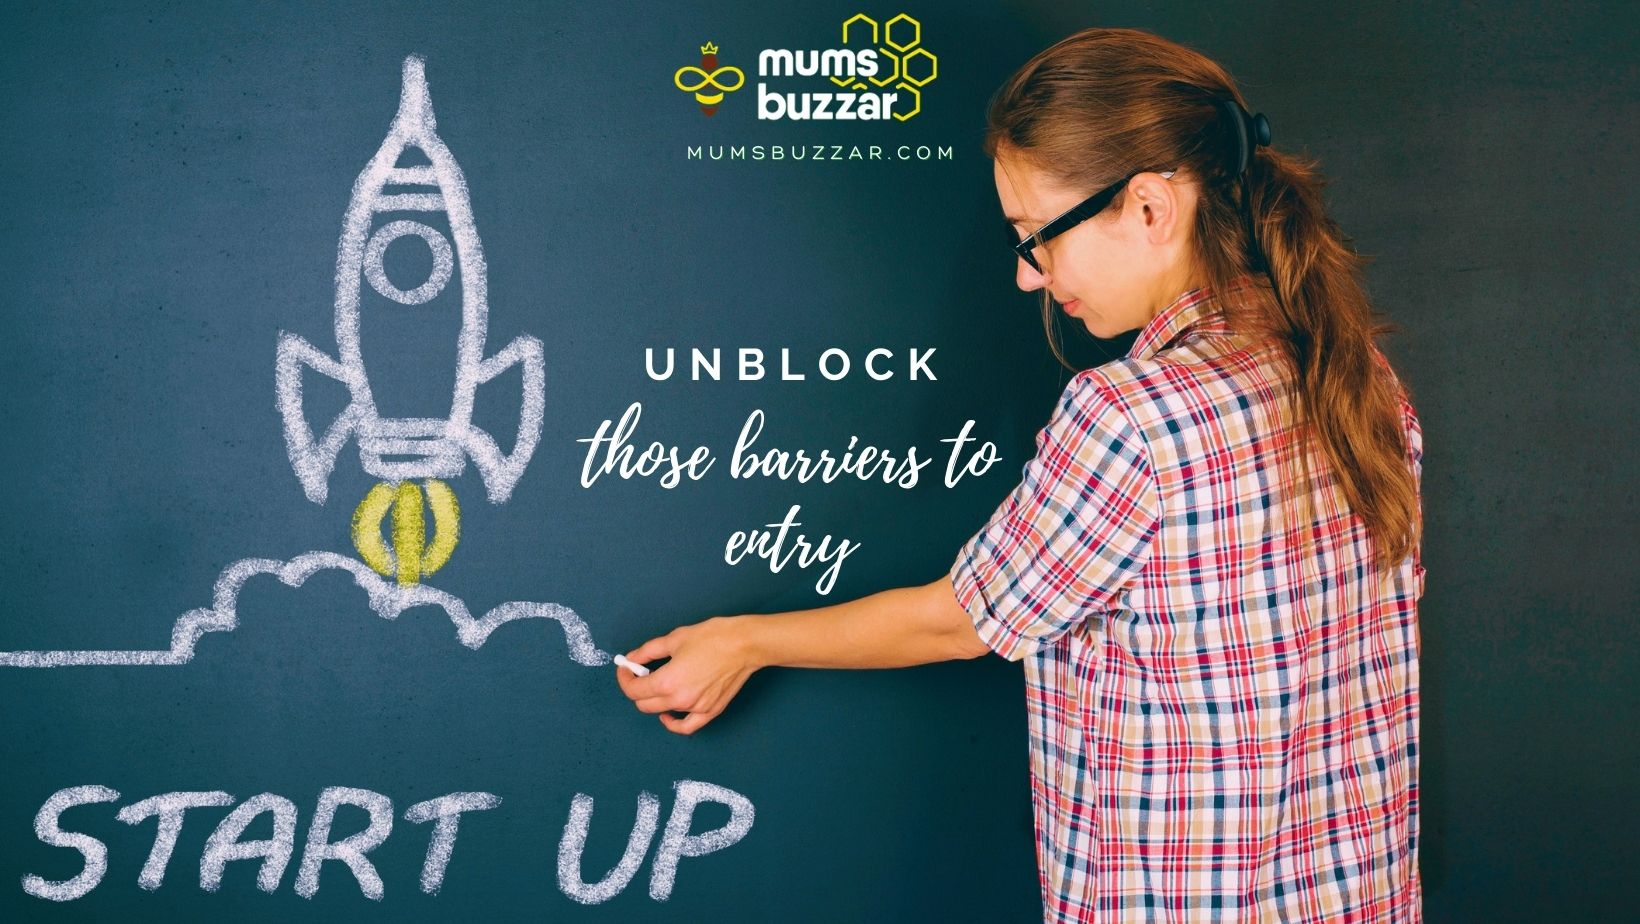 Unblock those barriers to entry